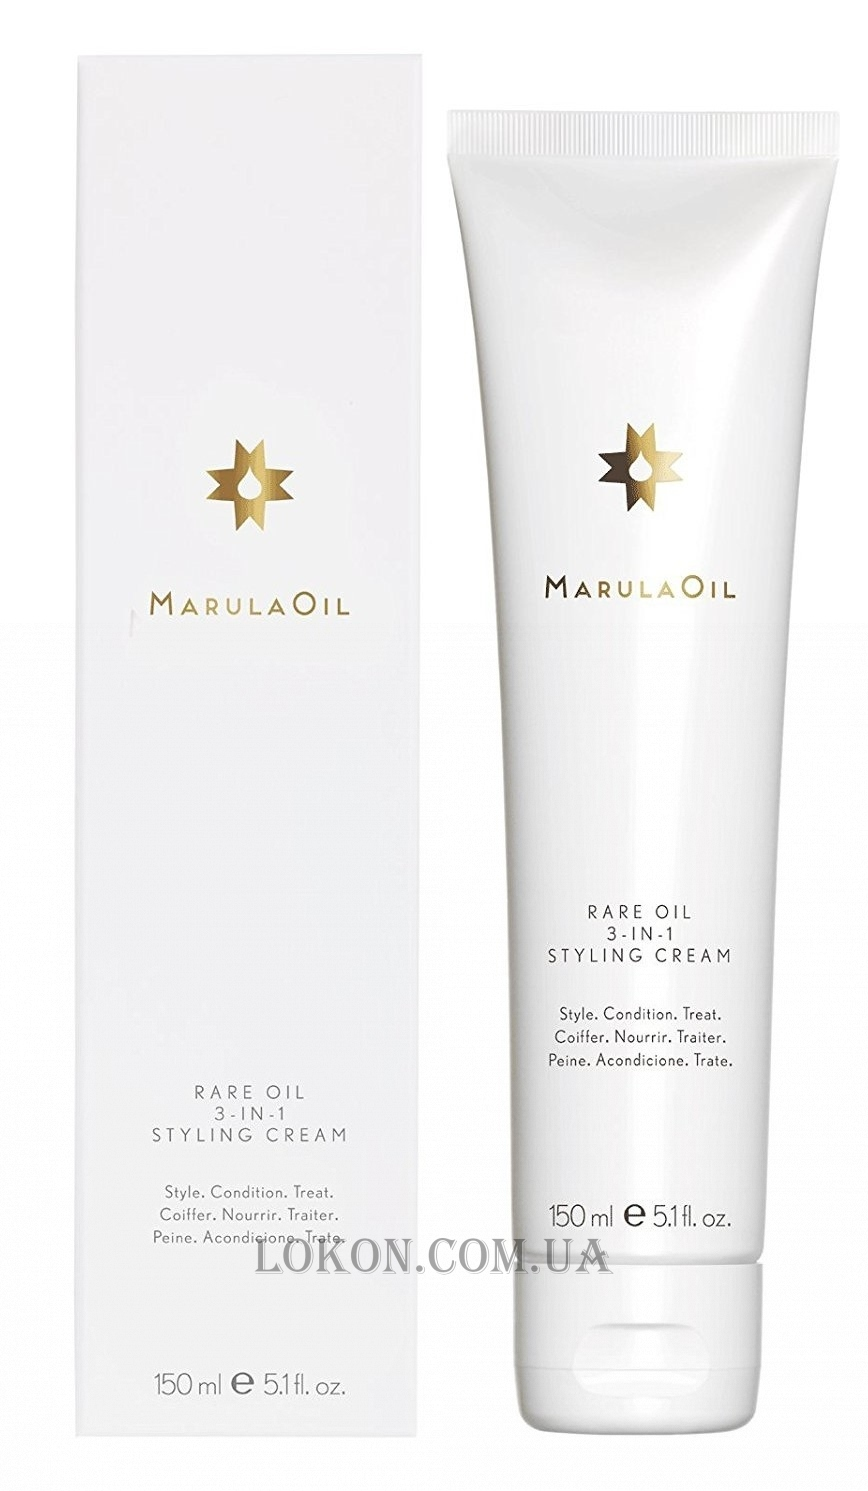 PAUL MITCHELL Marula Oil 3-in-1 Styling Cream - Стайлинговый крем  3 в 1